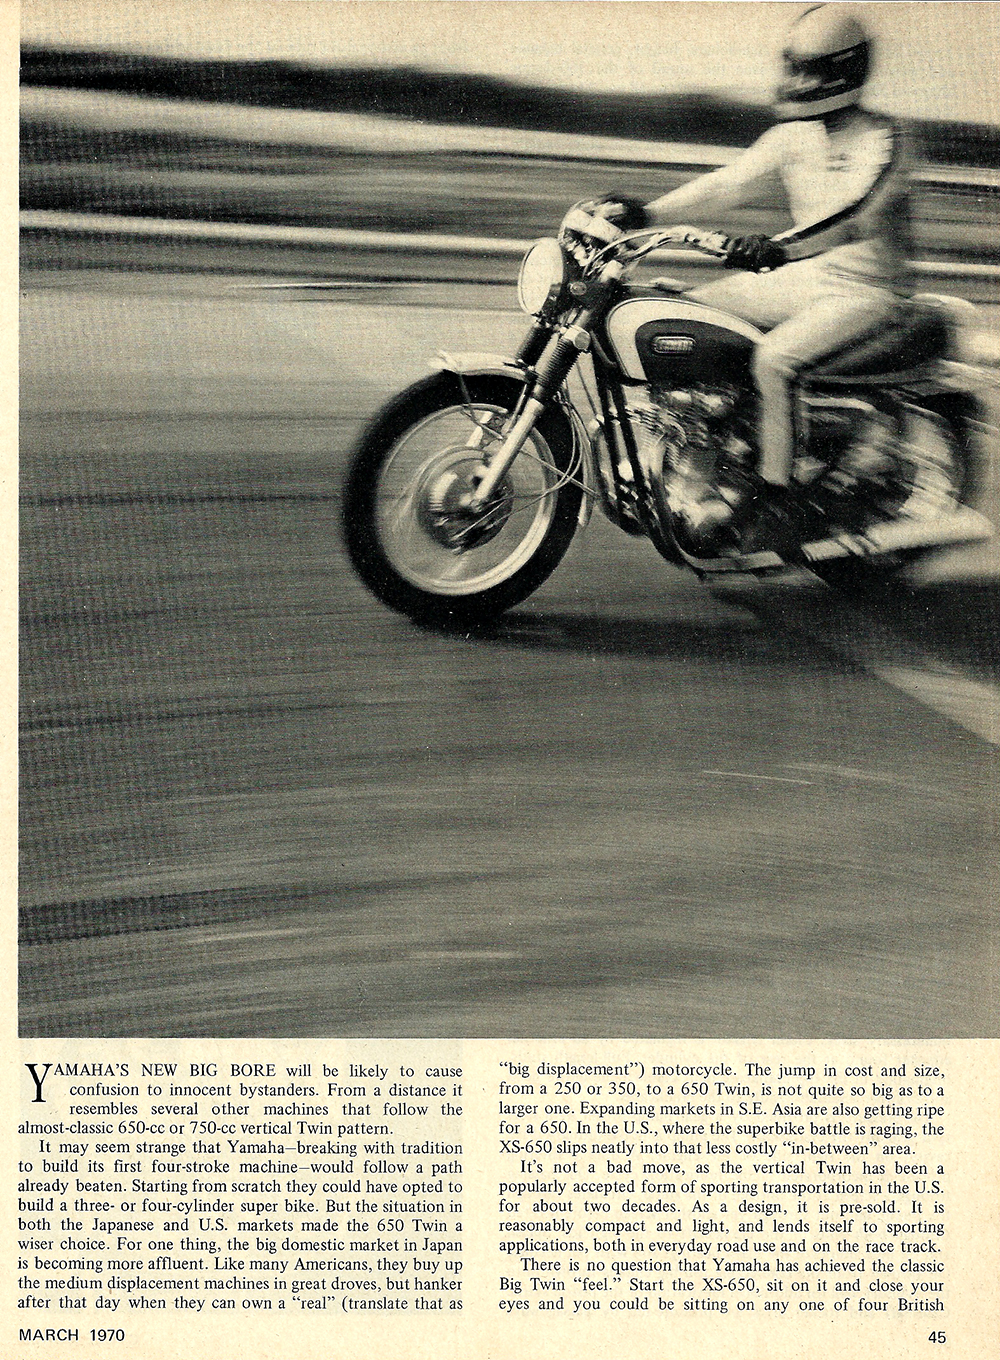 1970 Yamaha XS650 road test 2.jpg